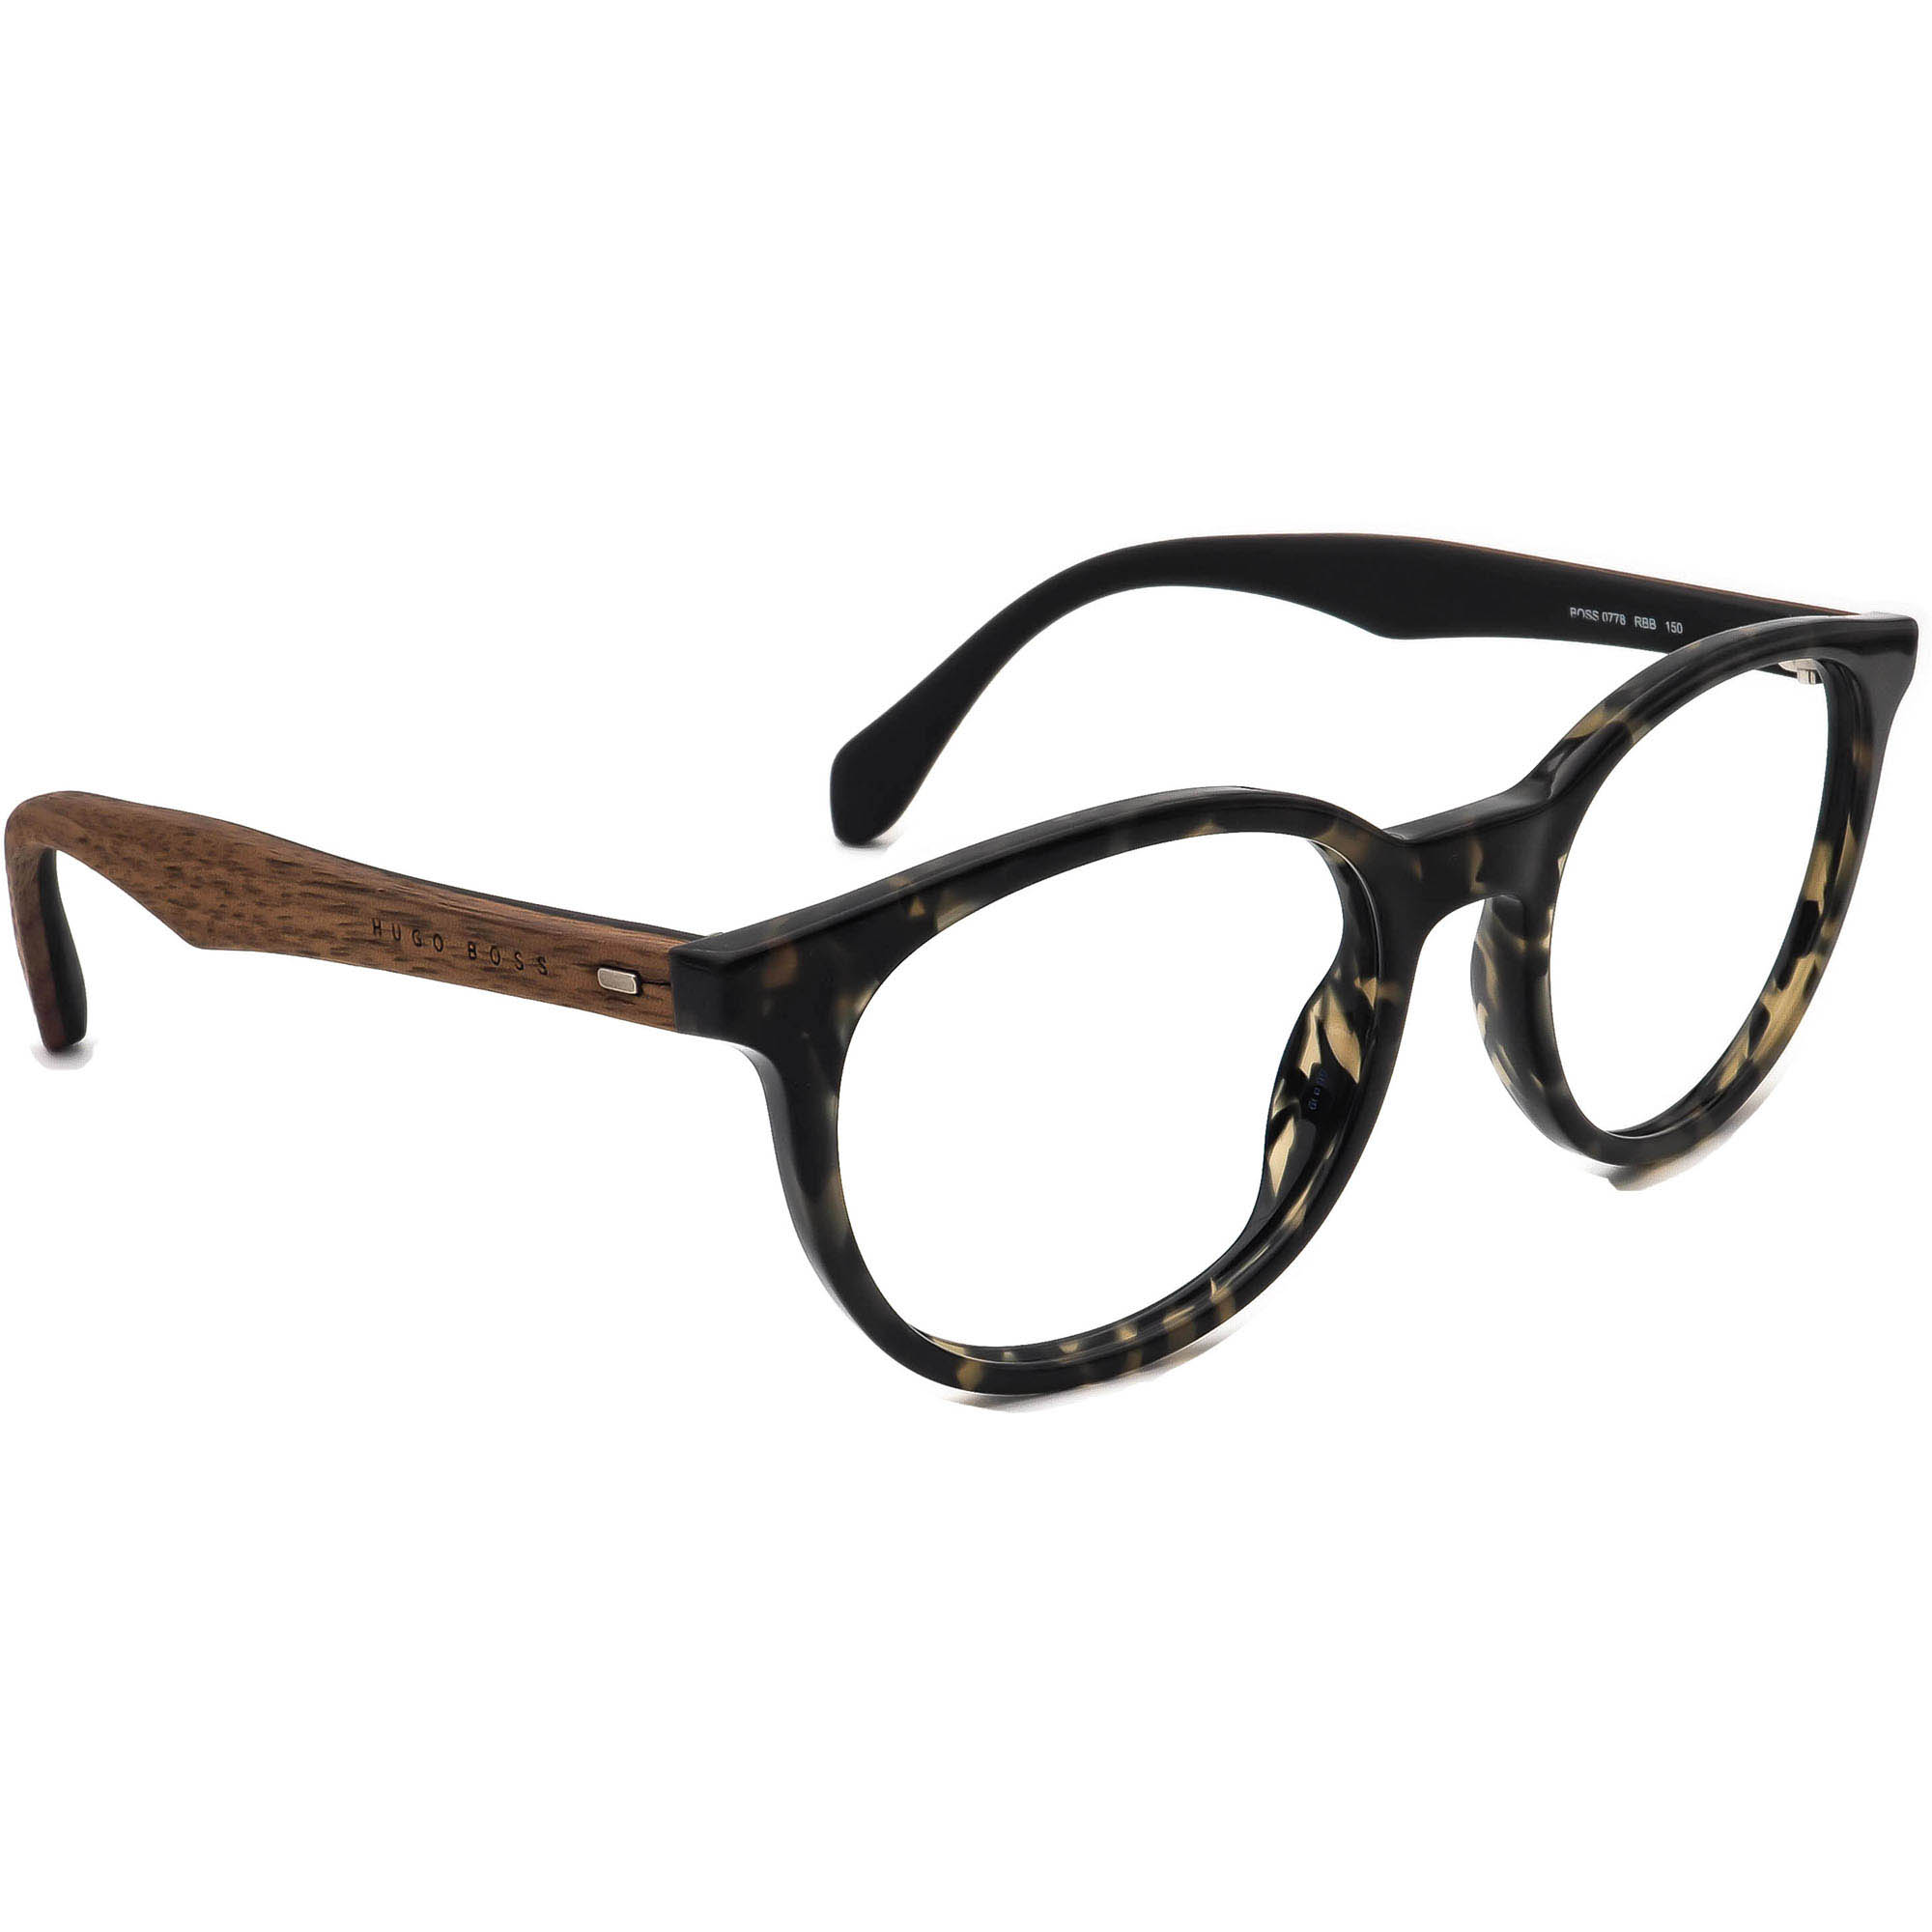 Hugo Boss 0778 RBB Eyeglasses